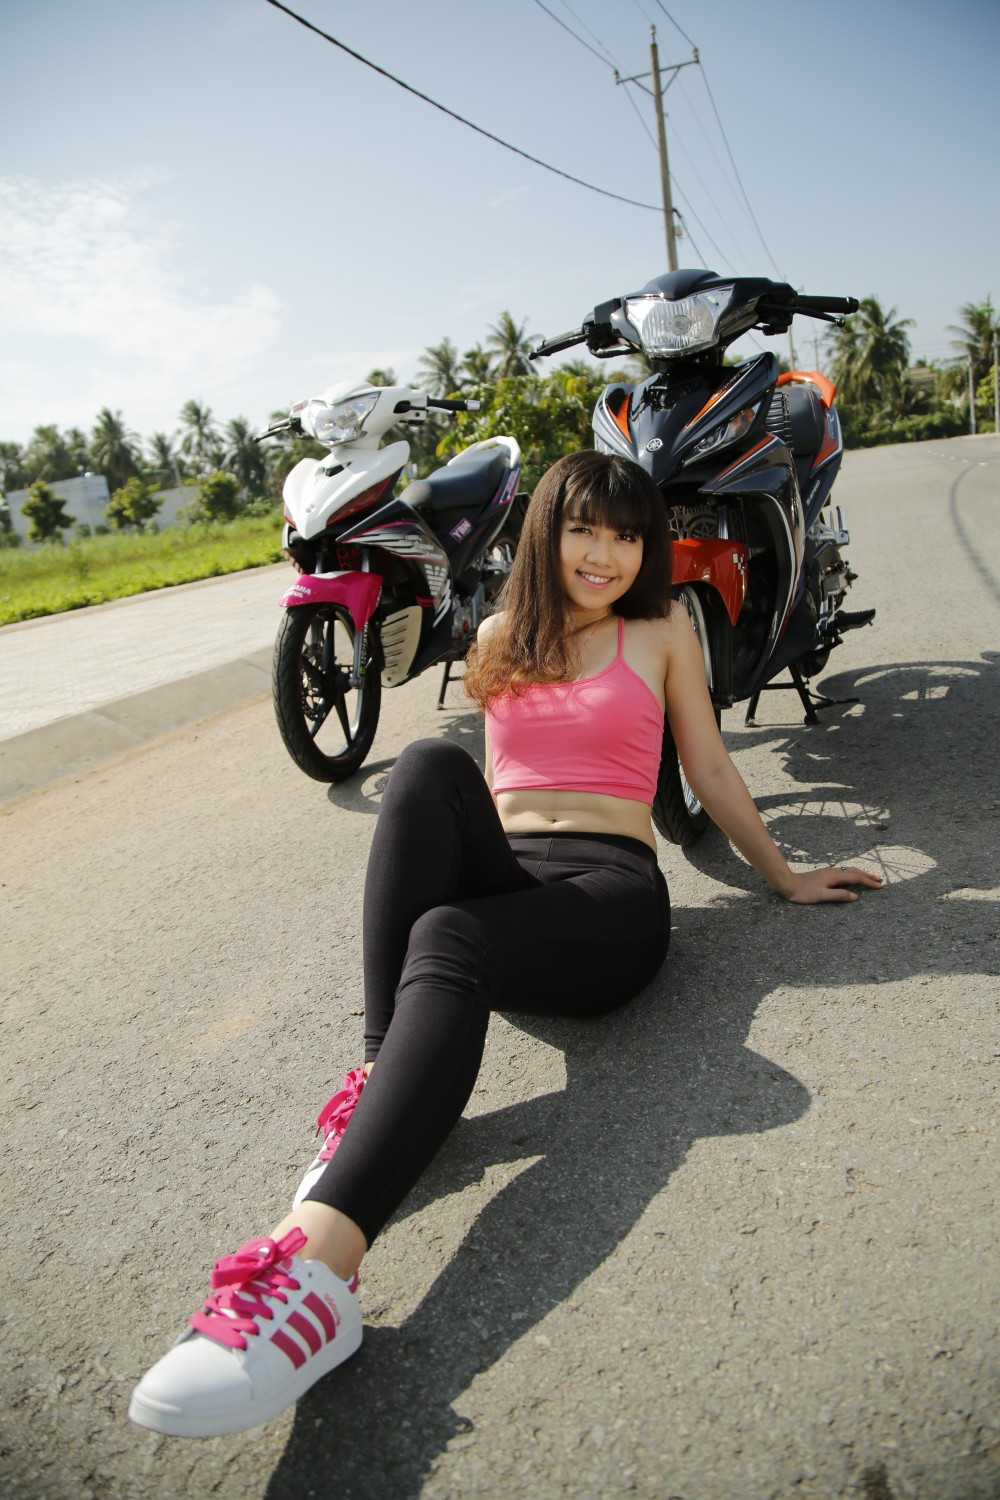 Racing Hot Girl And Exciter Ben Tre - 13